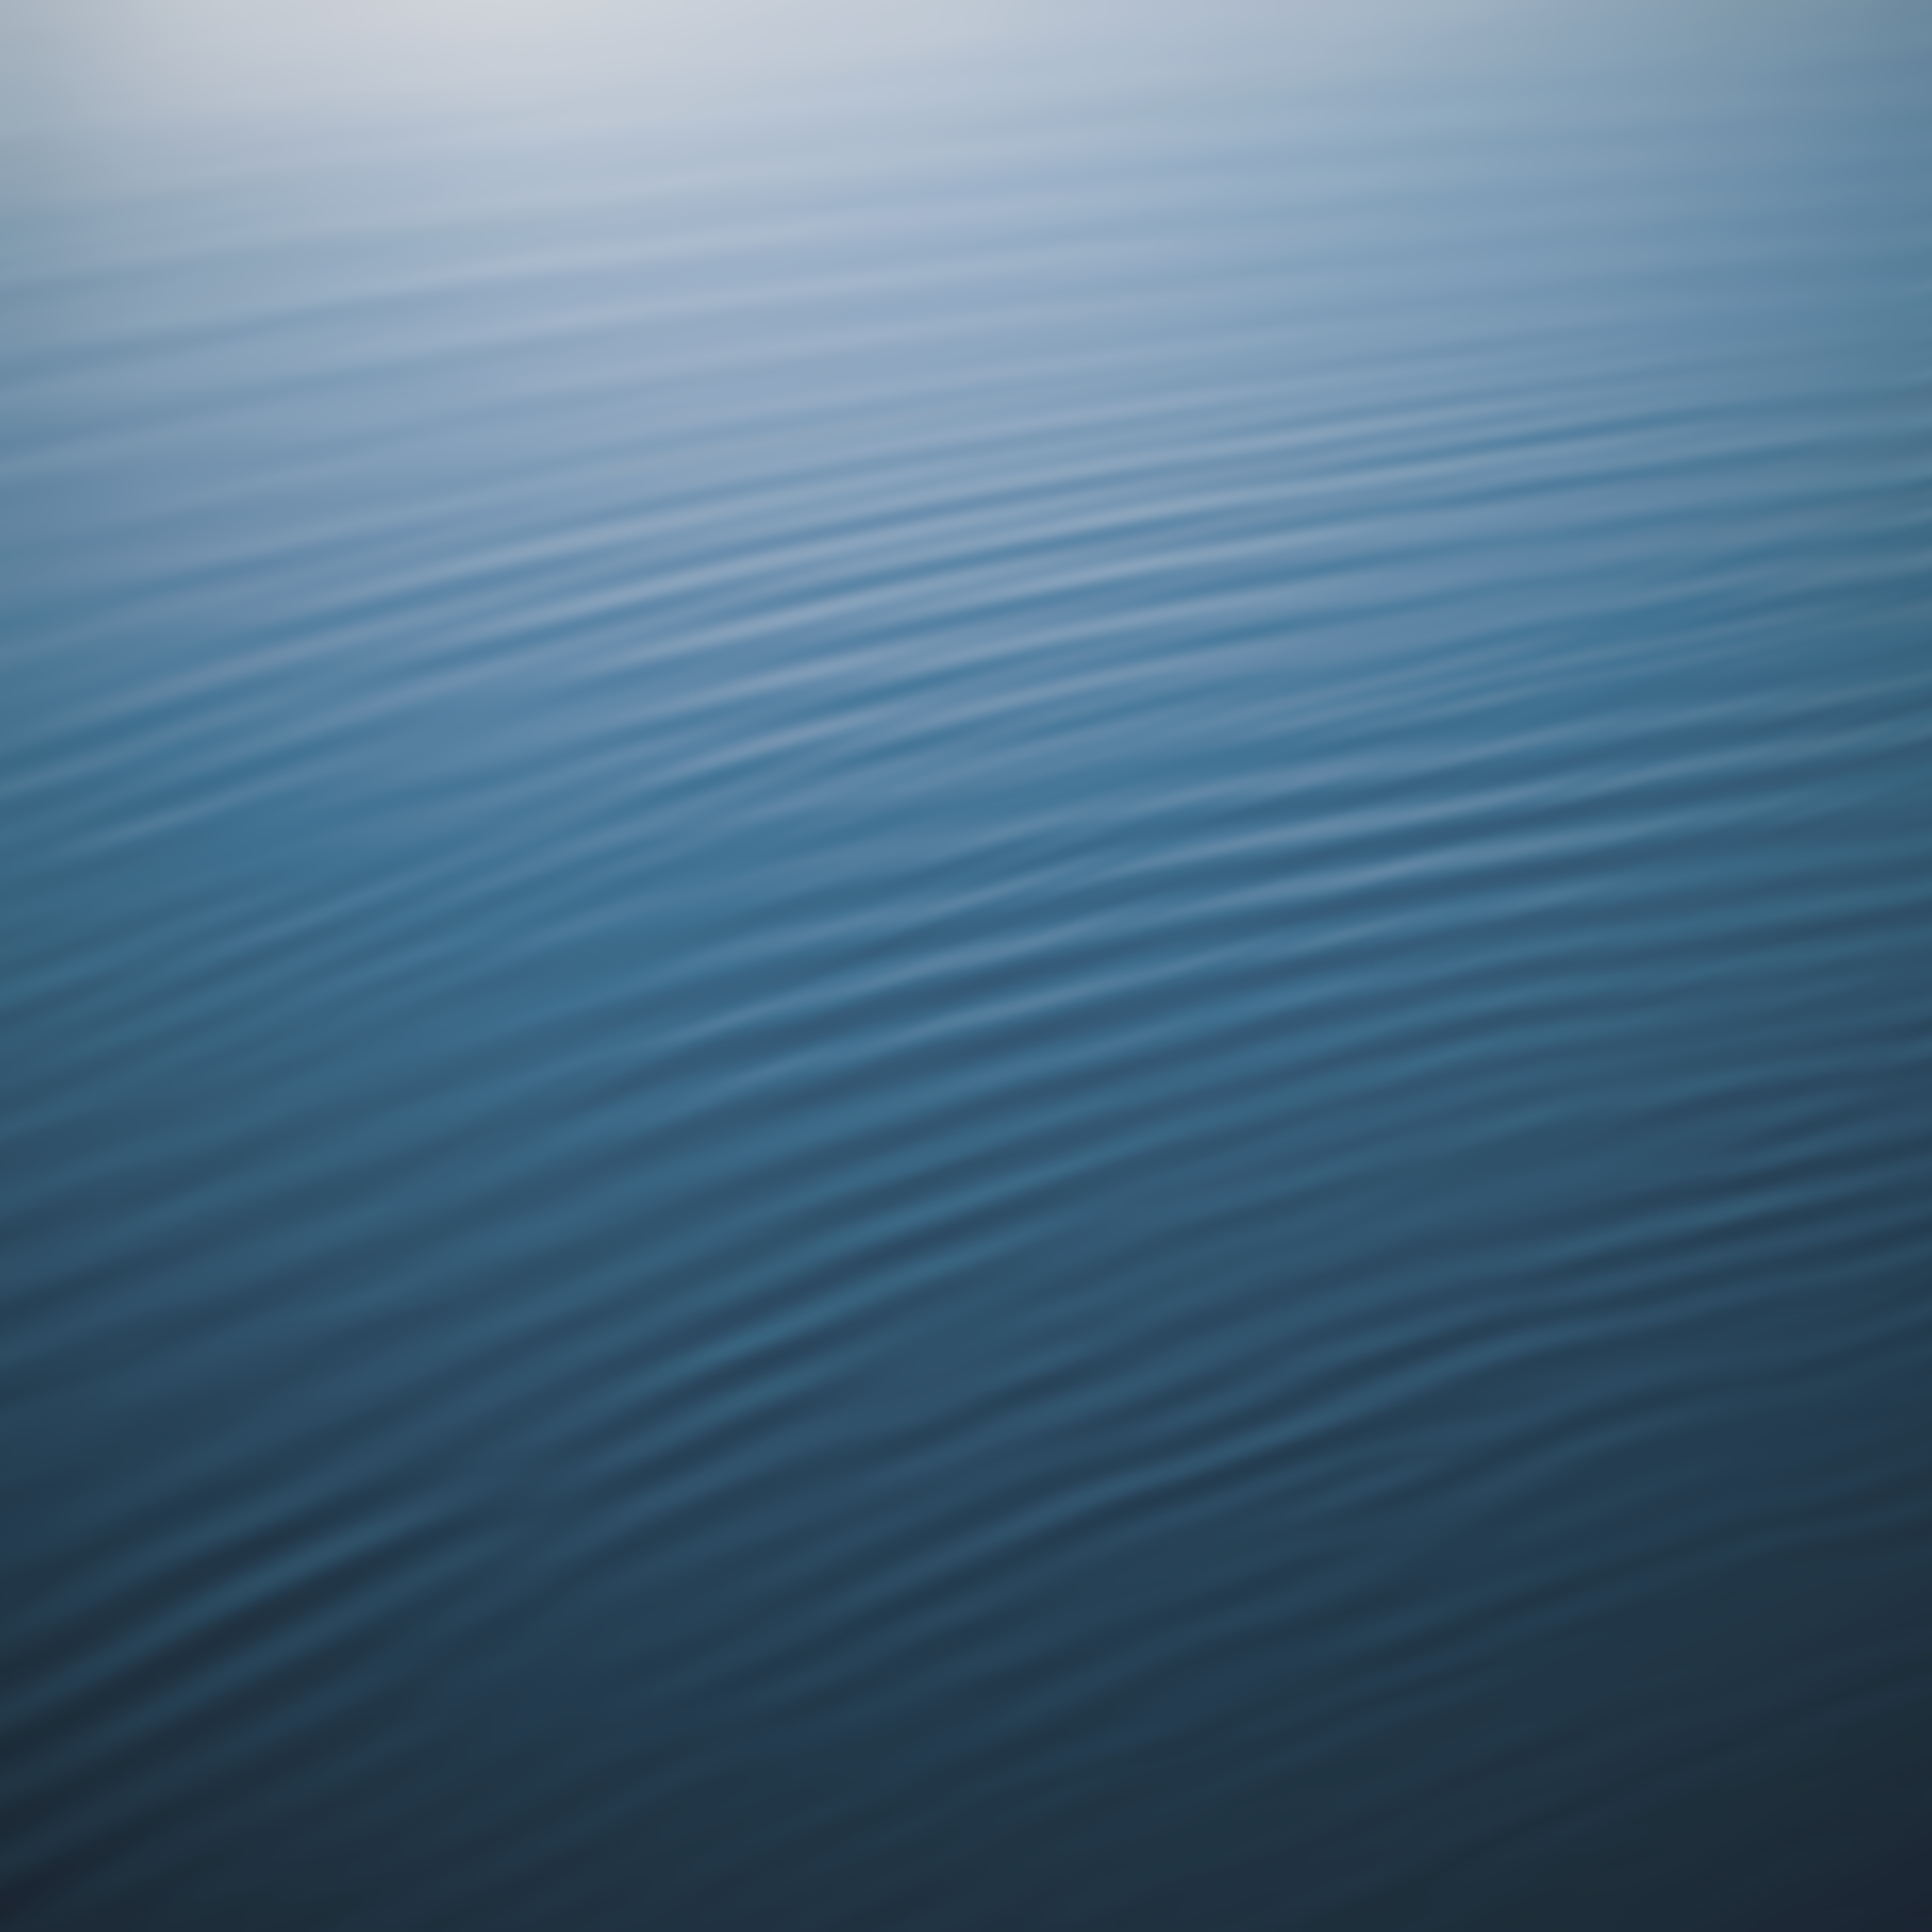 Iphone Ripple Wallpaper